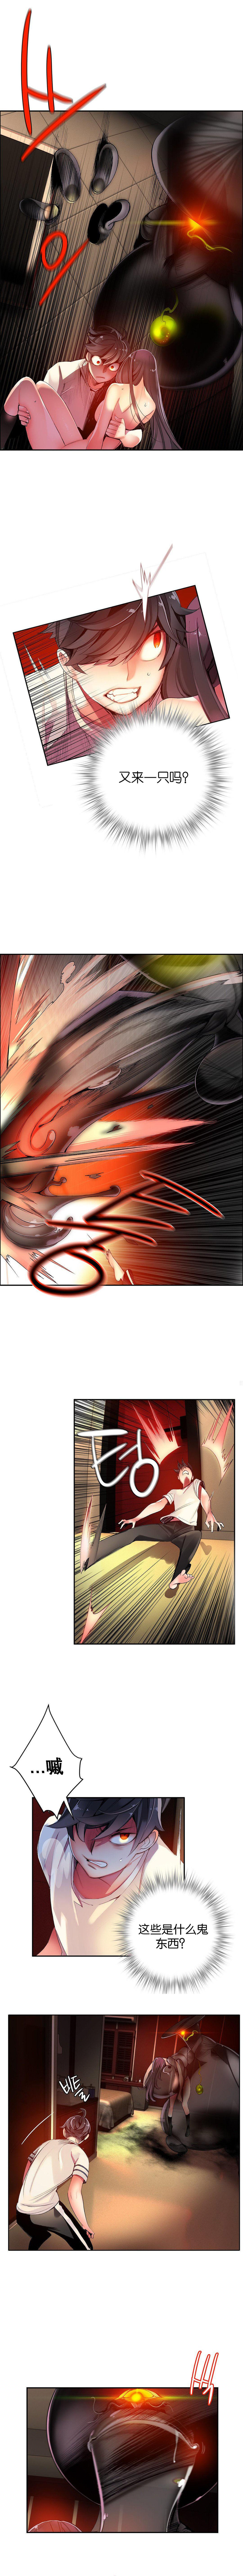 Lilith`s Cord   莉莉丝的脐带 Ch.1-37 465